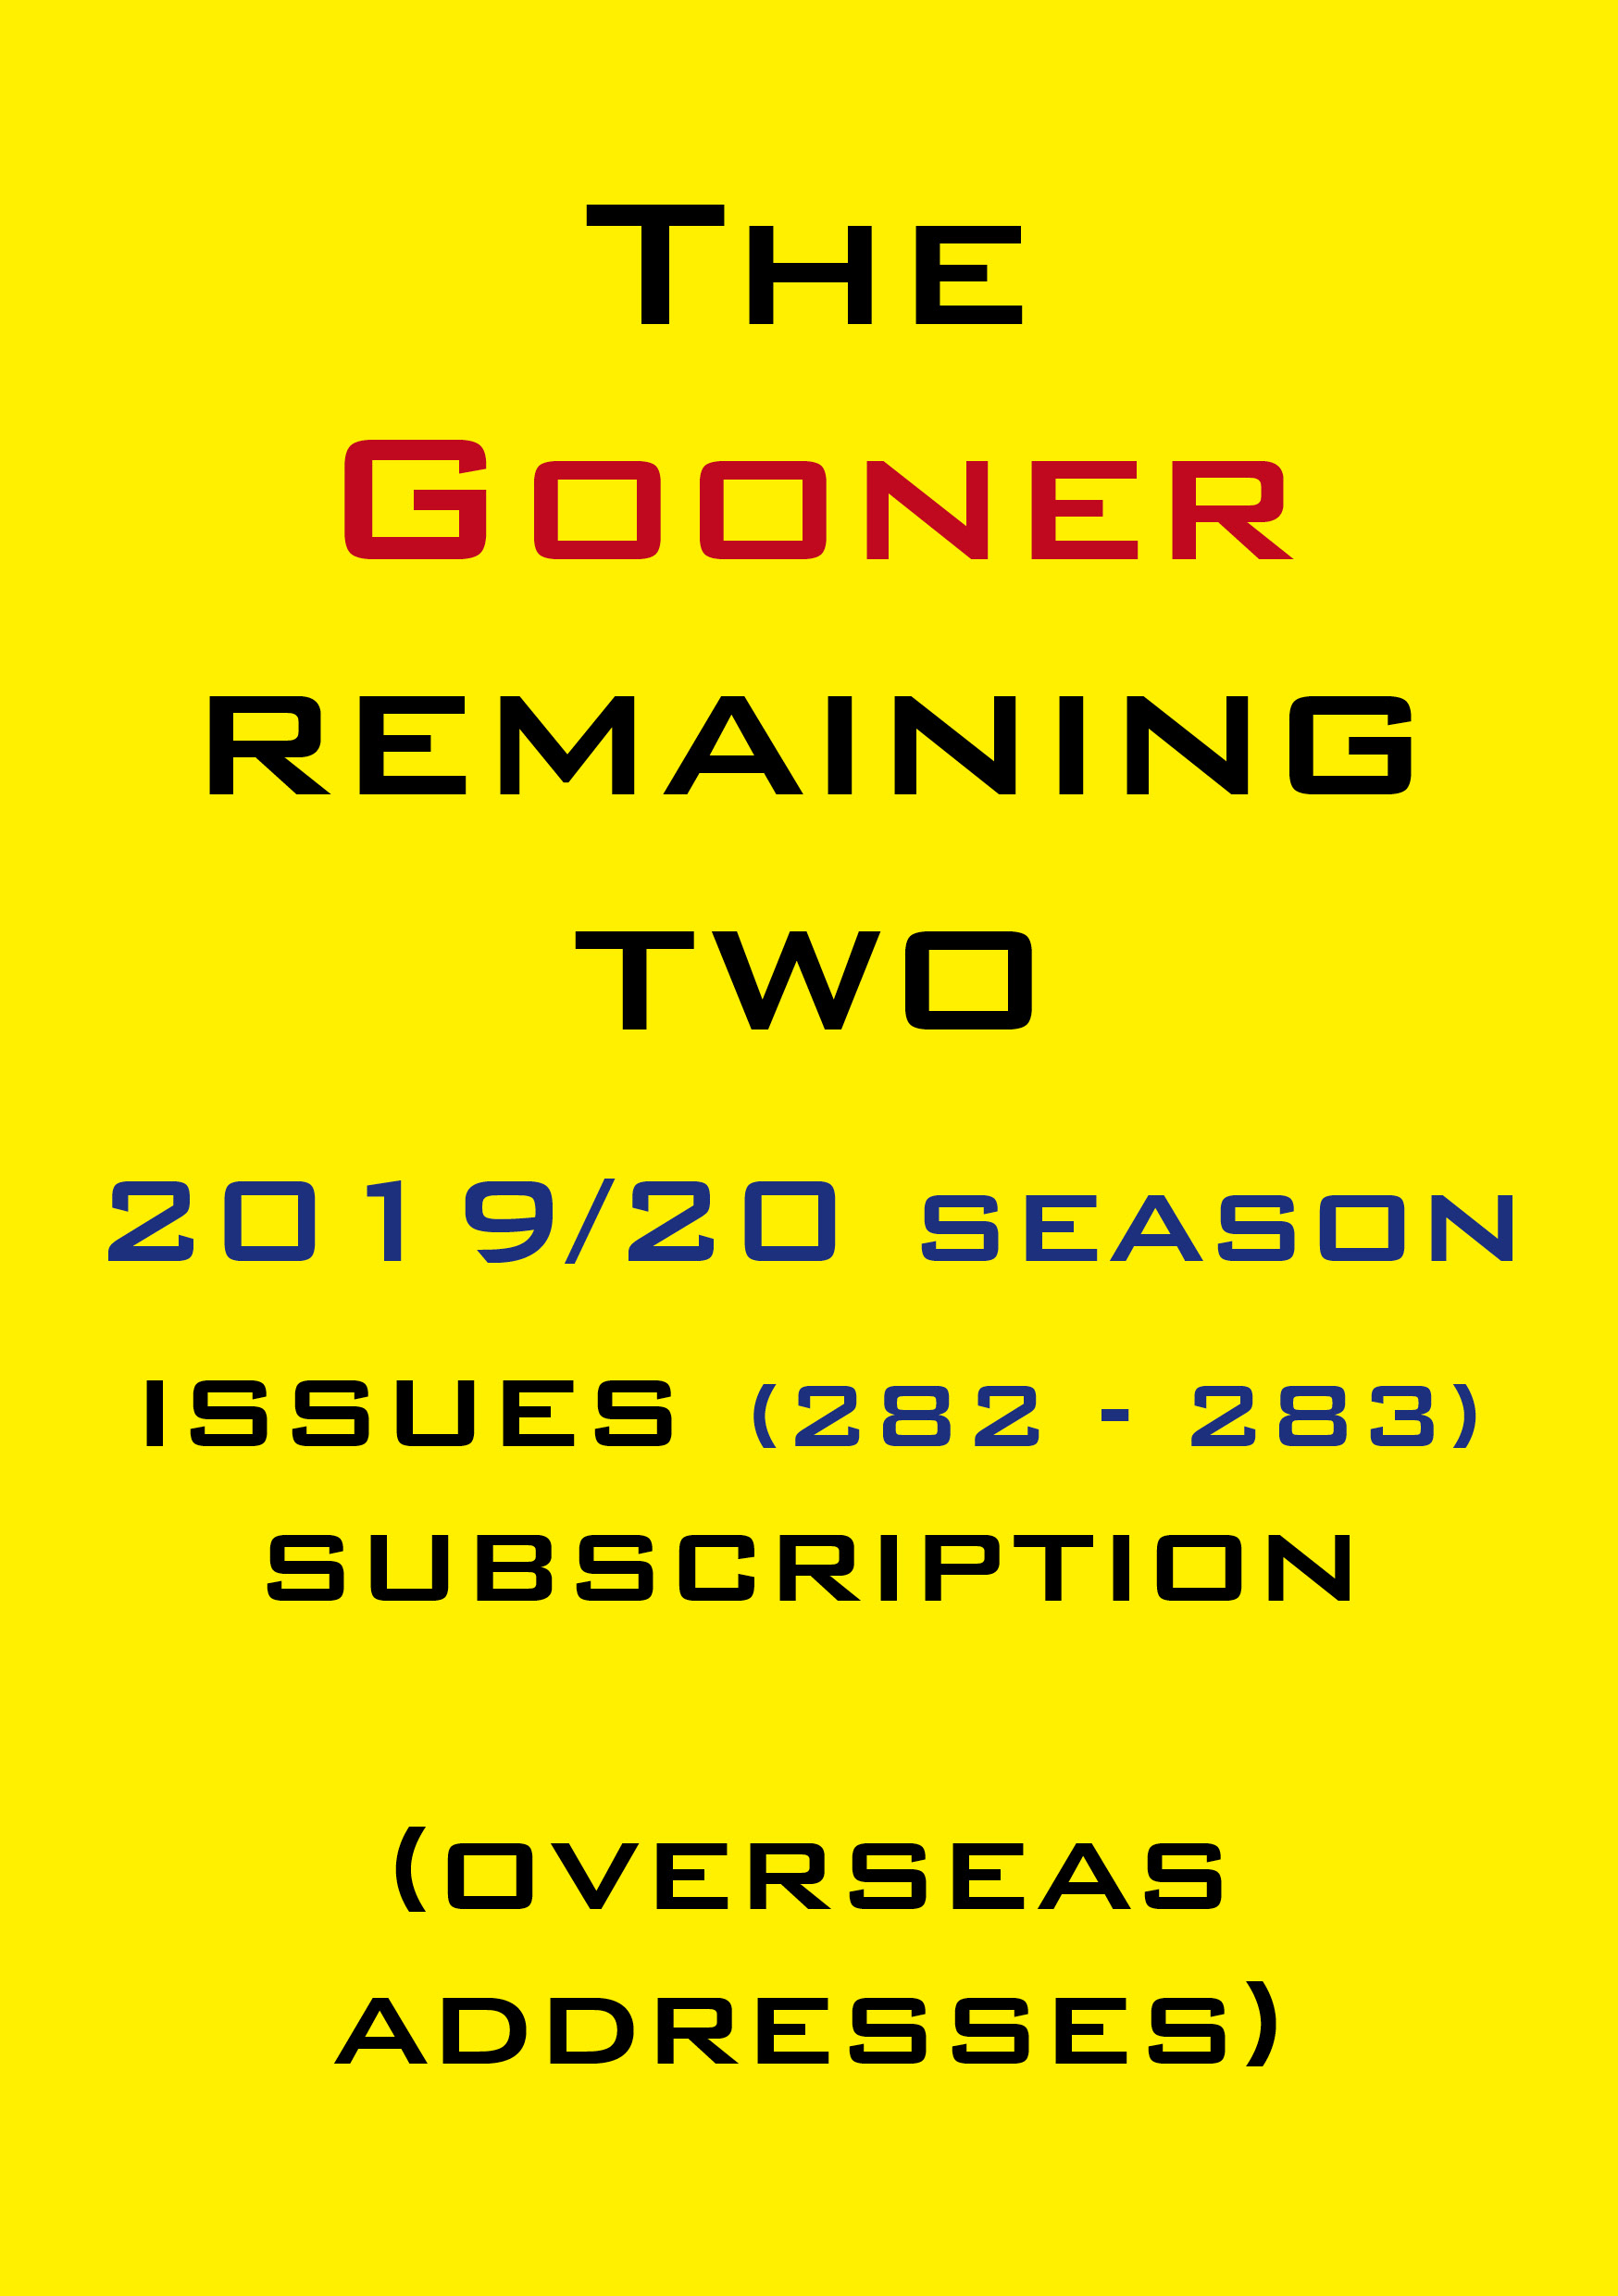 1h. The Gooner! - 2 remaining 2019/20 issues subscription Abroad